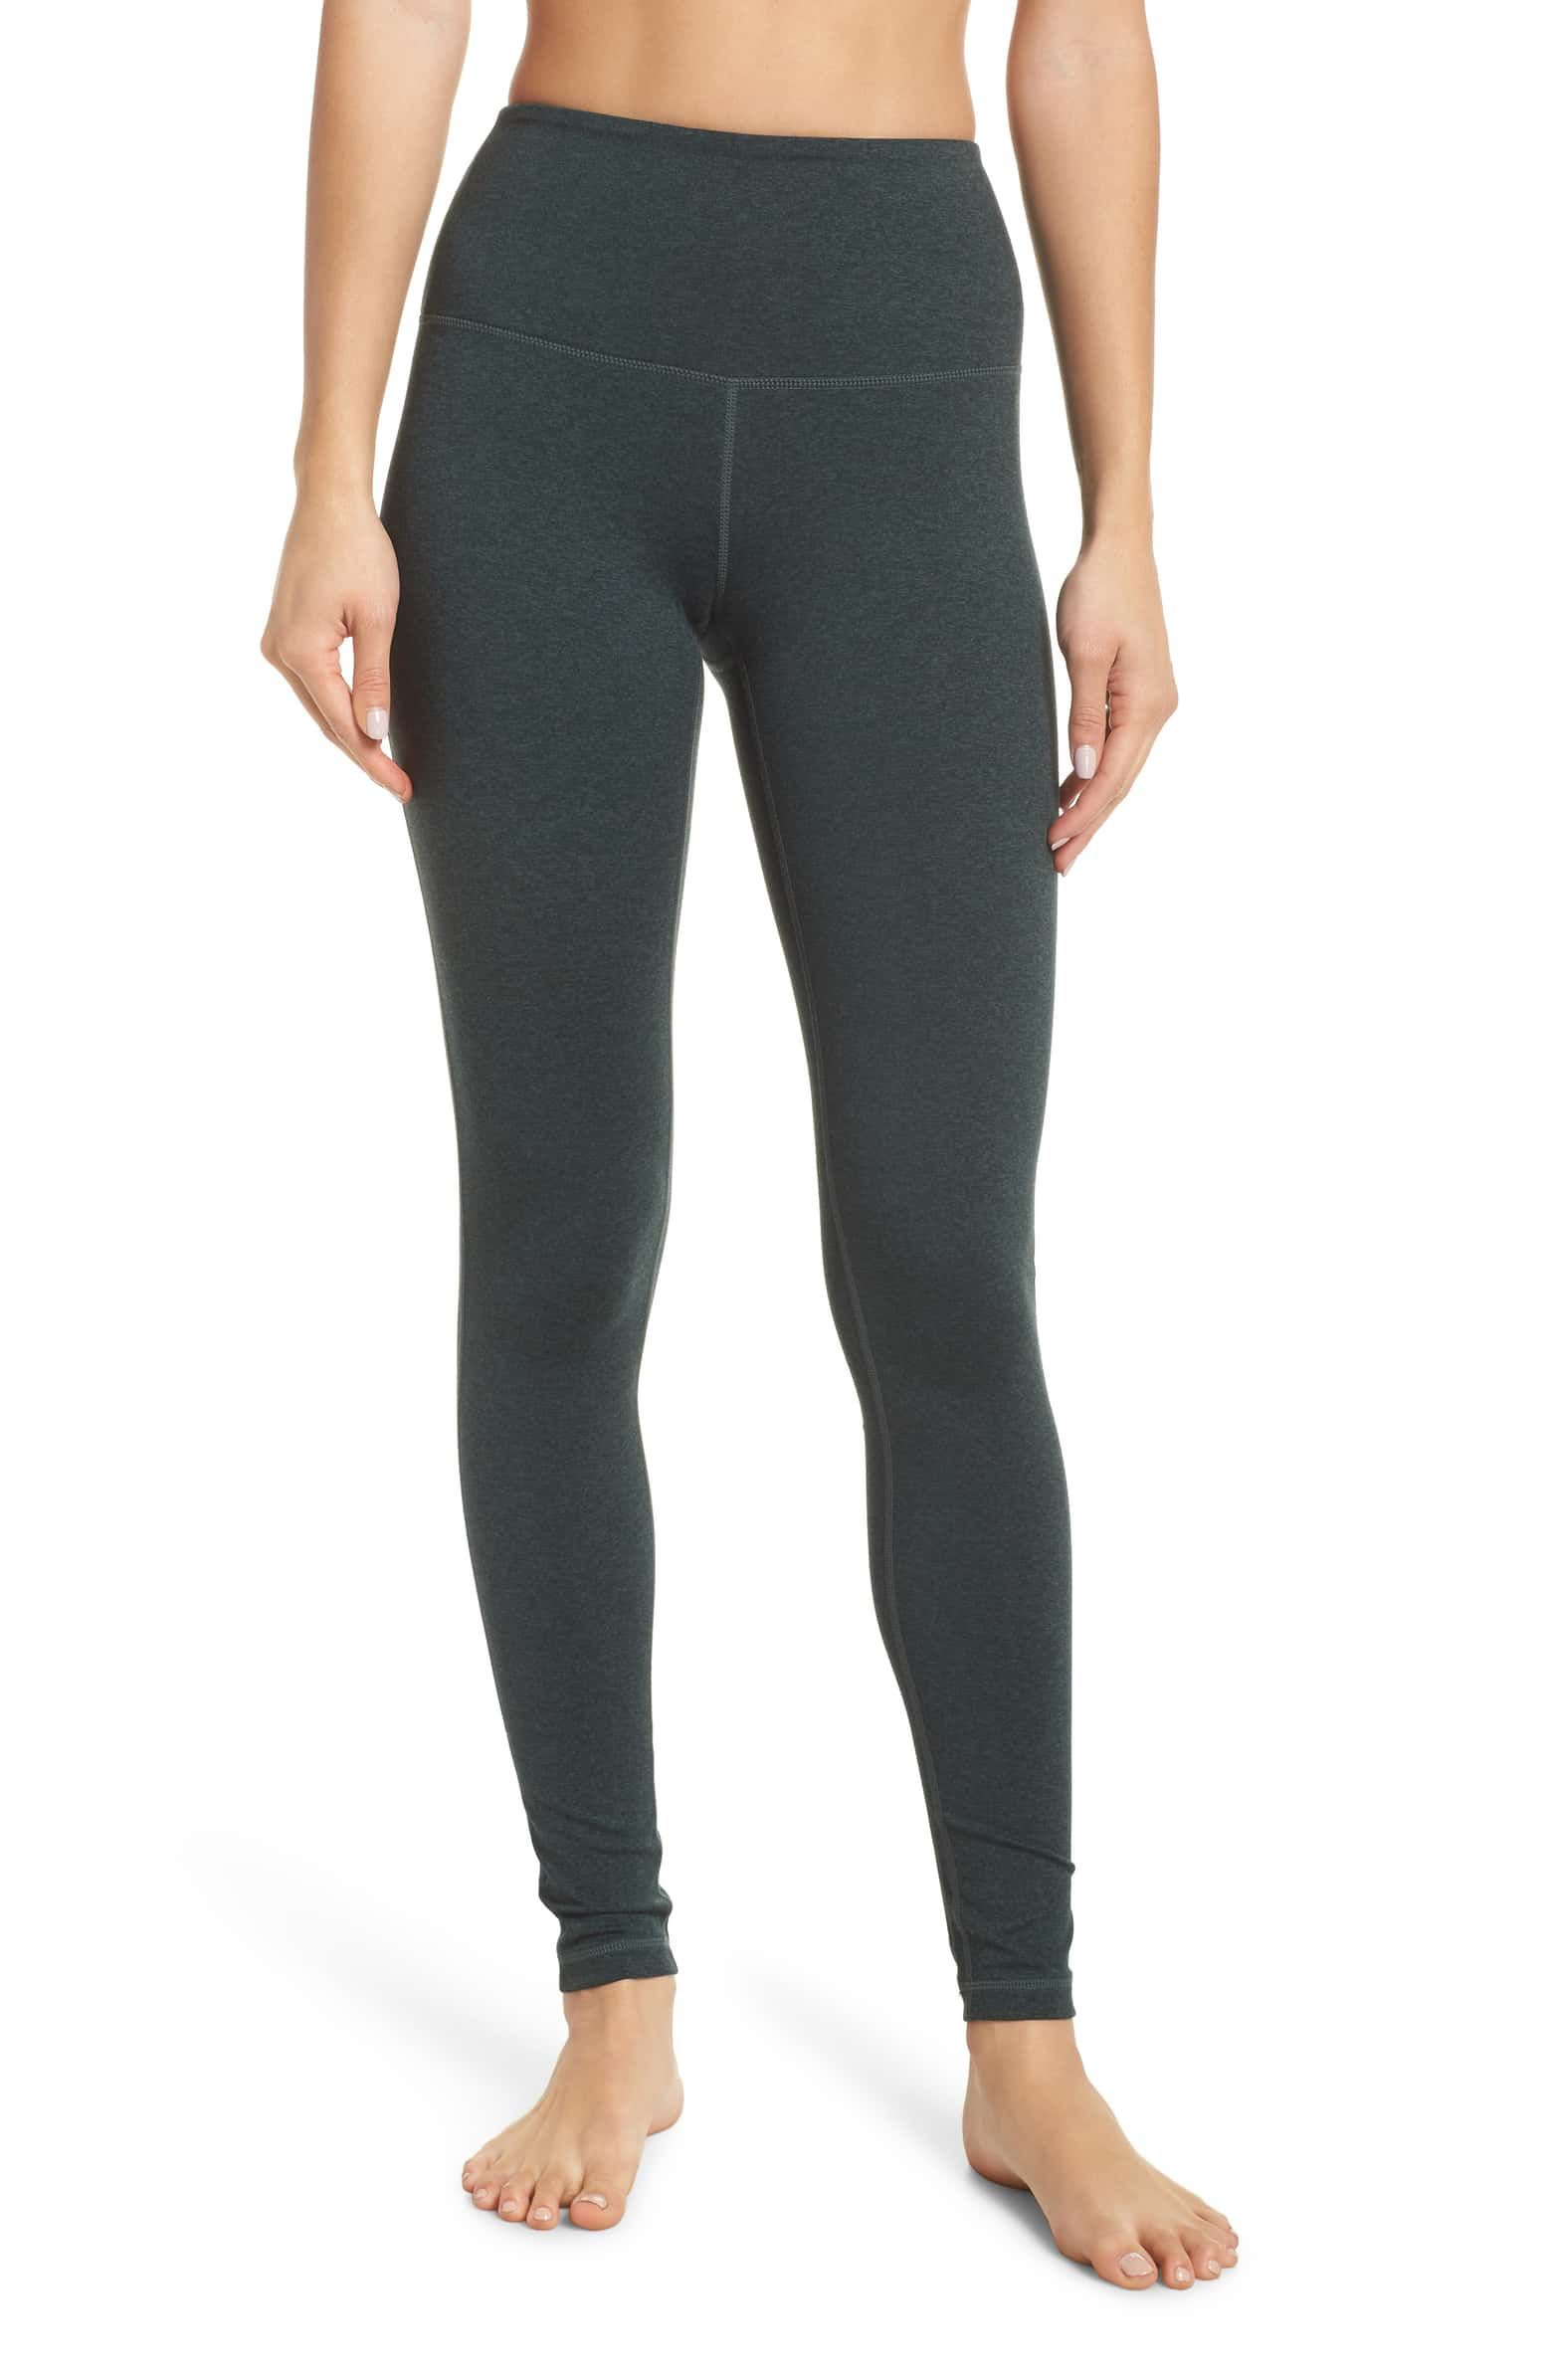 79f6b132282407 Zella Live In High Waist Leggings | Nordstrom | CLOTHES in 2019 ...